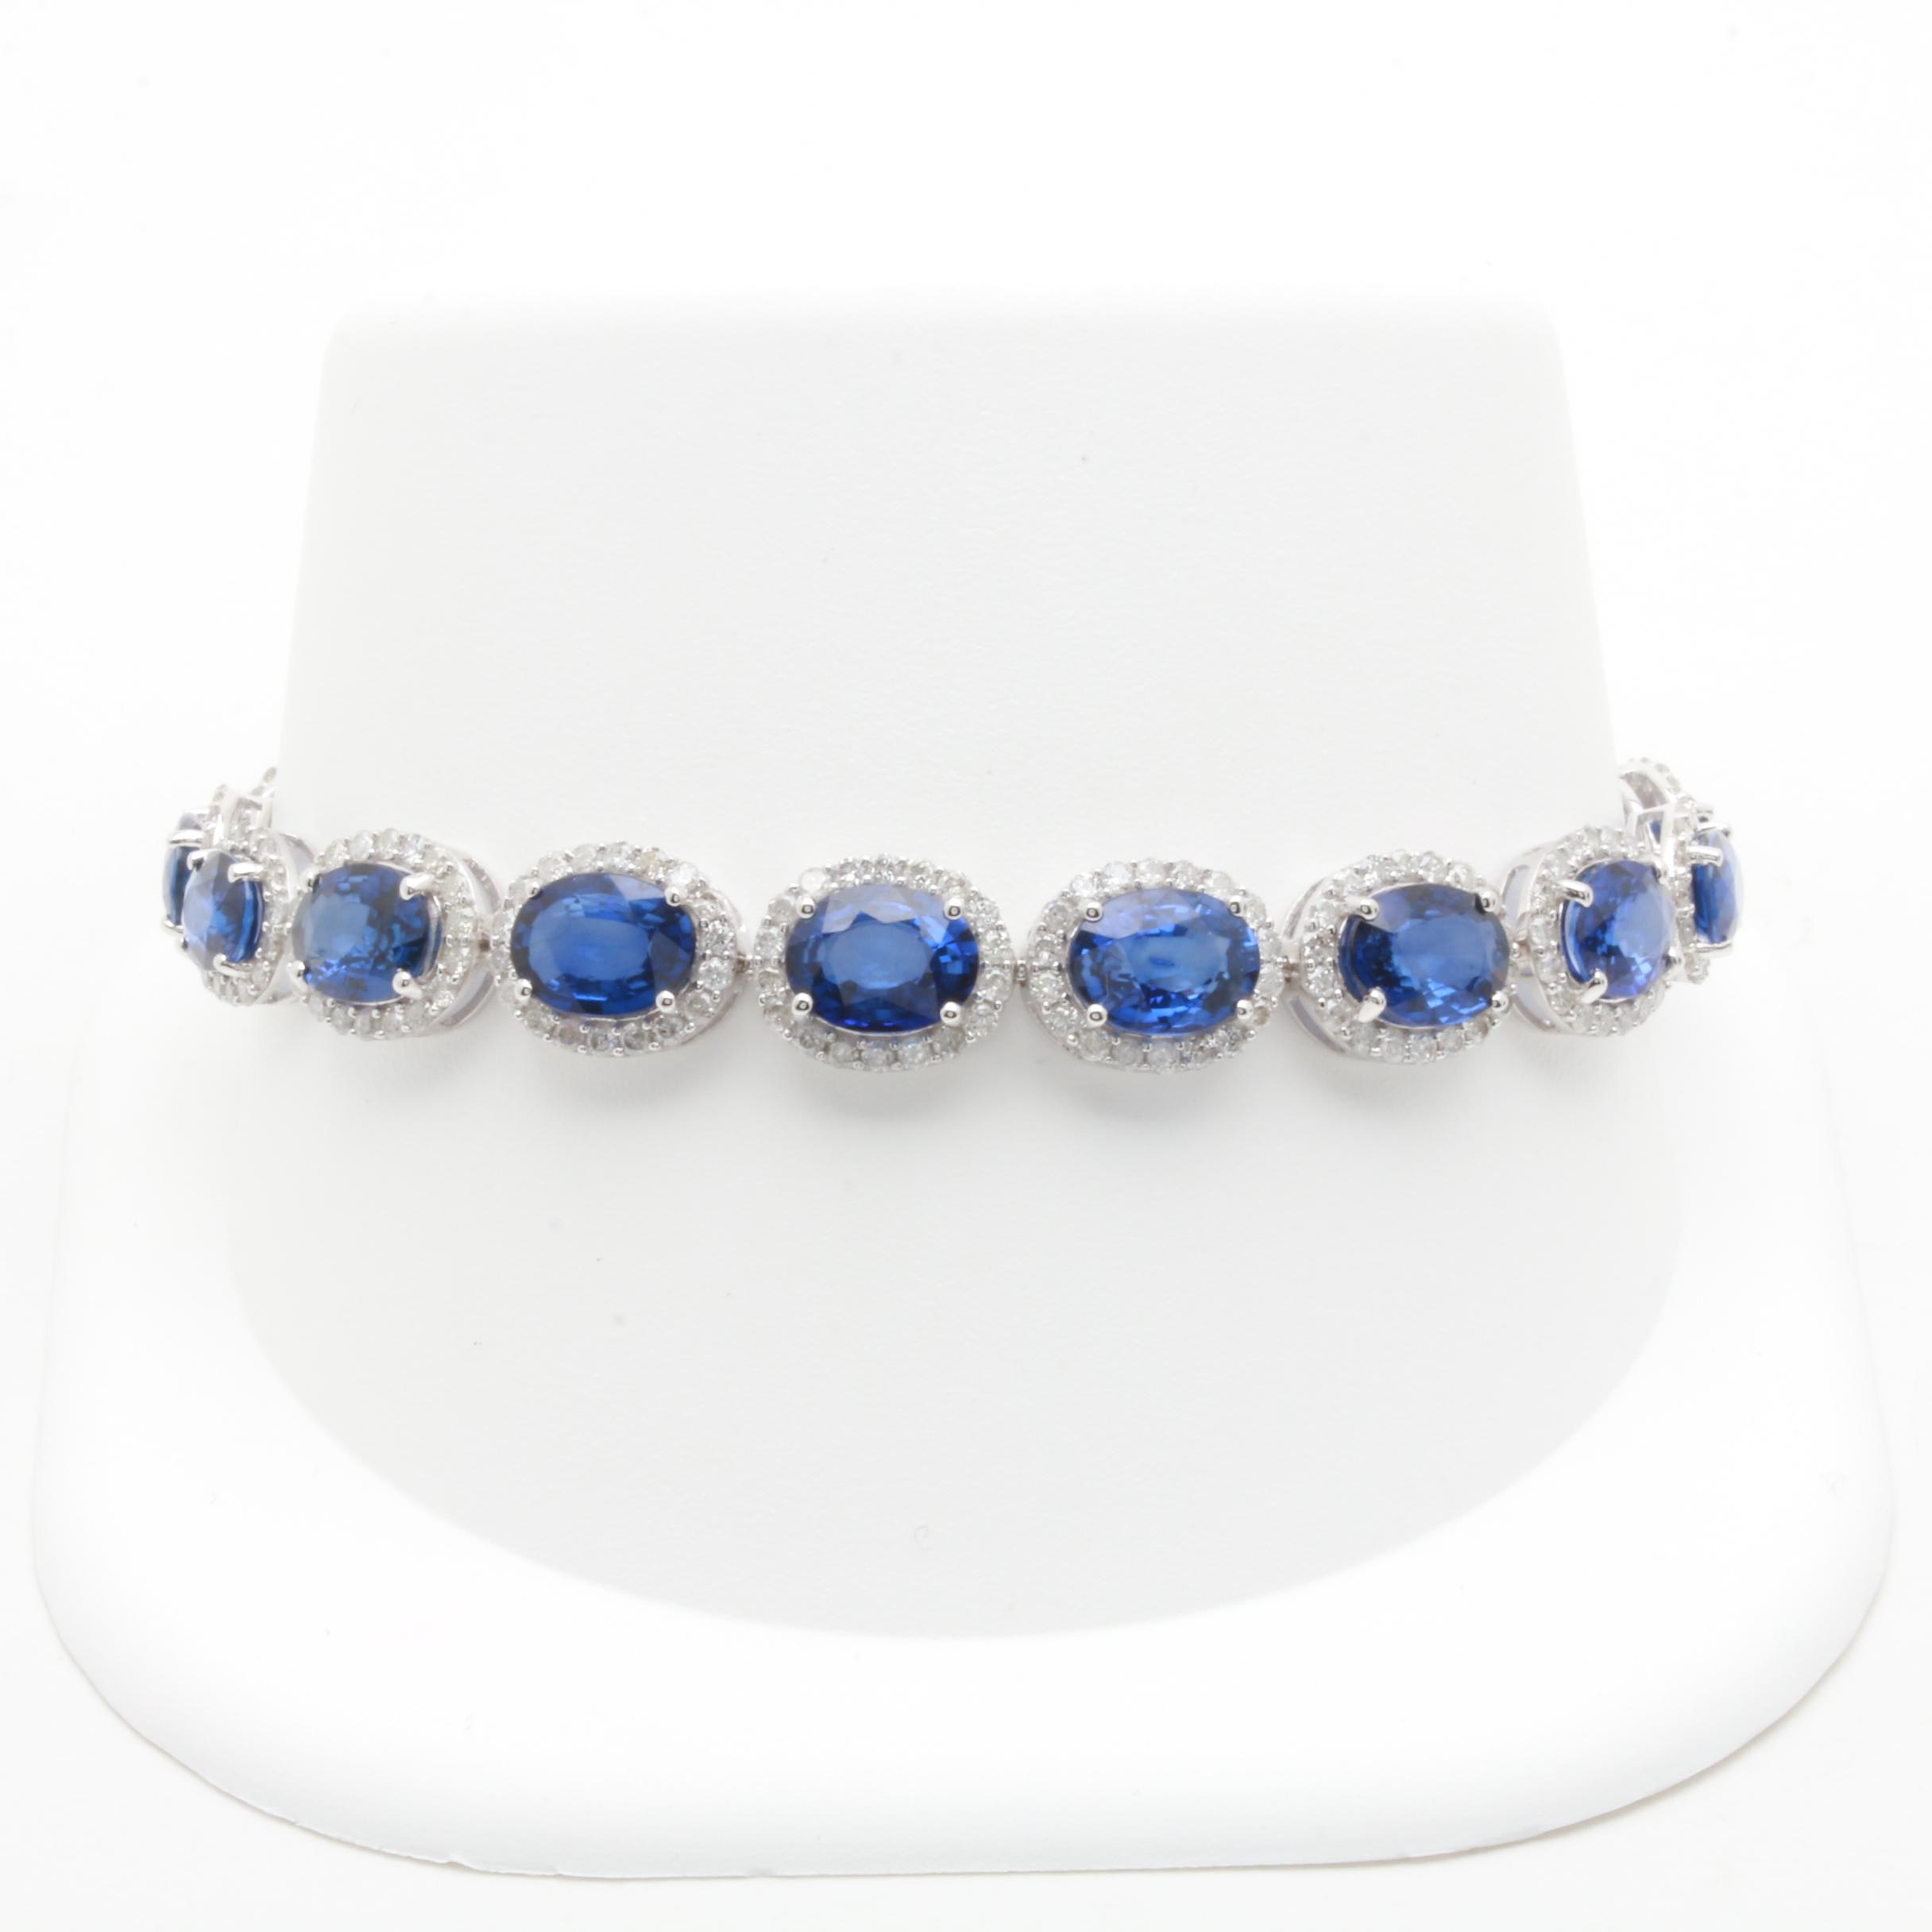 14K White Gold Sapphire and 2.93 CTW Diamond Link Bracelet